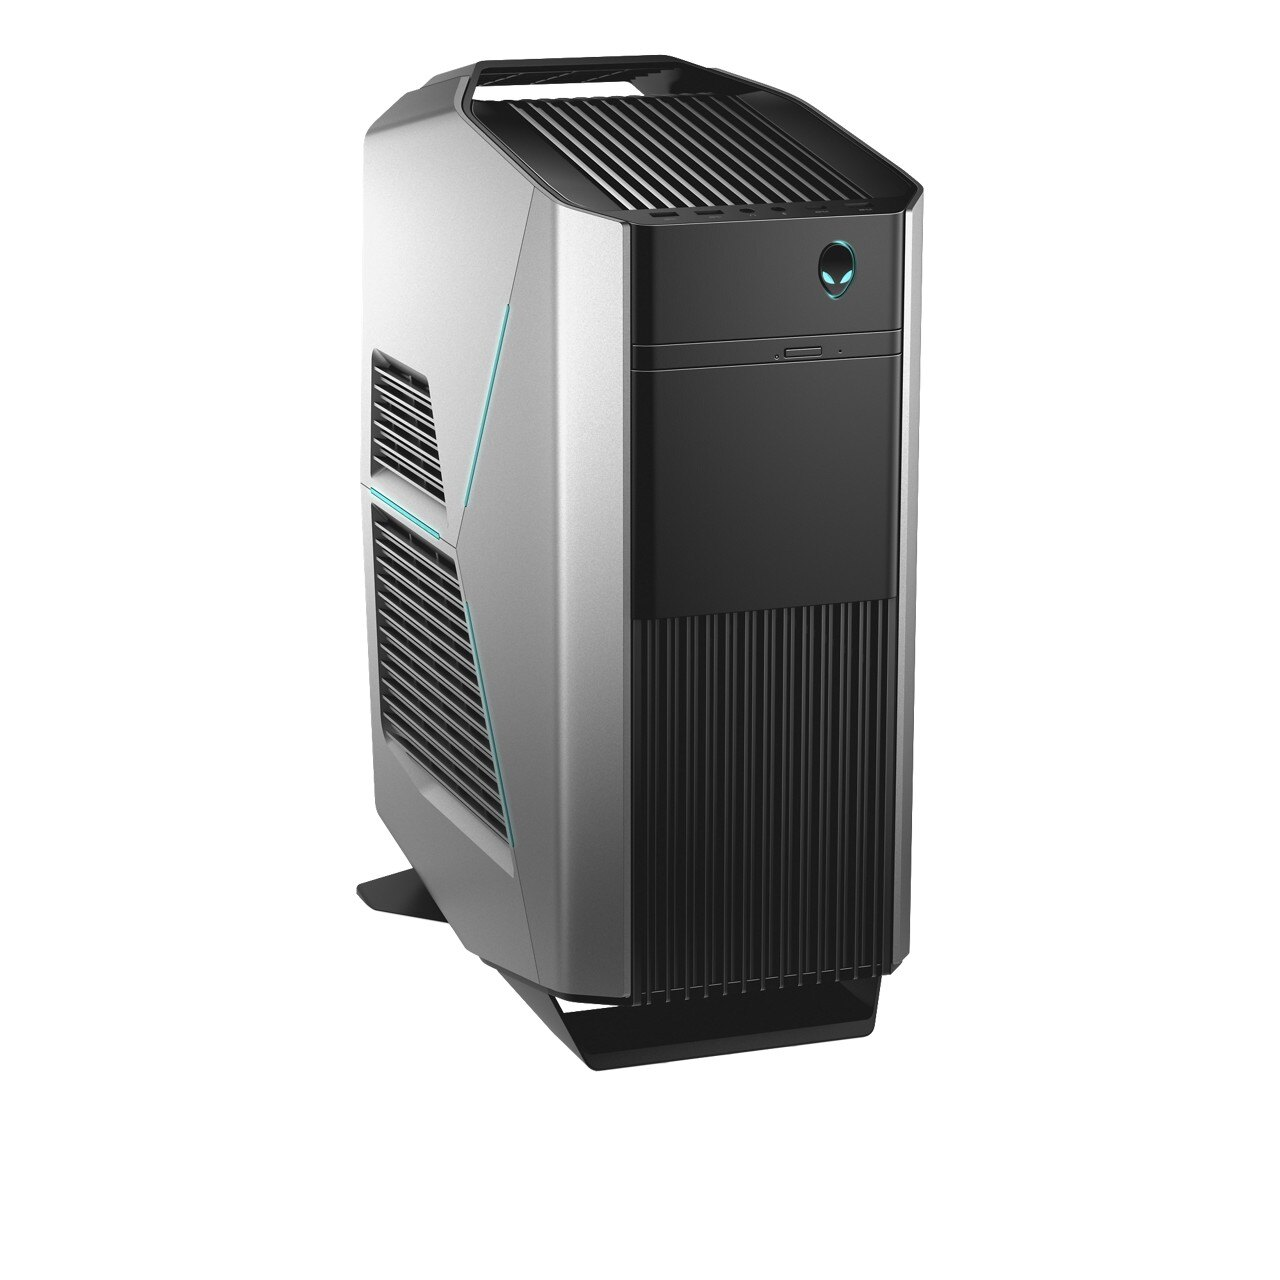 Dell Alienware Aurora R8 Desktop with Intel Hex Core i5-9400 / 8GB / 1TB HDD & 256GB SSD / Win 10 / 6GB Video